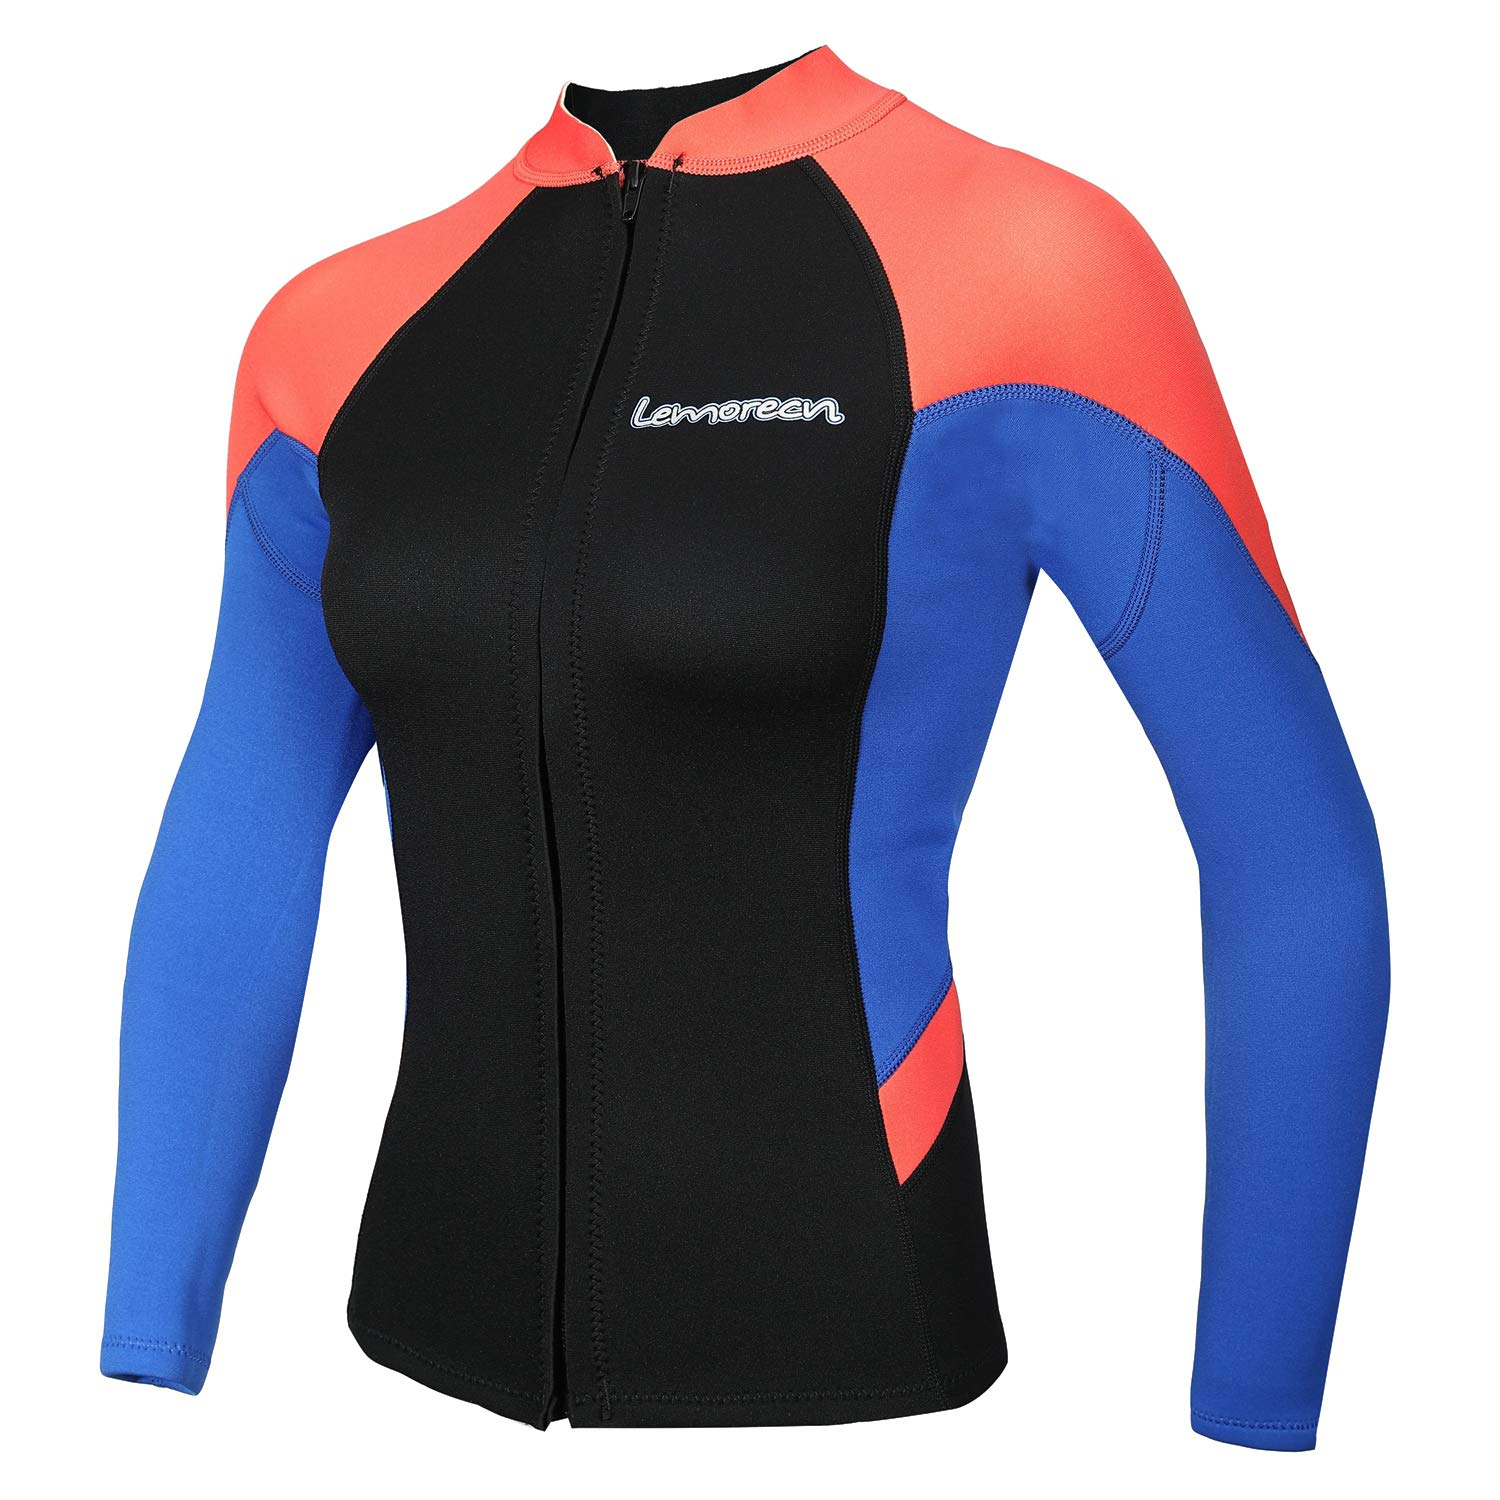 Lemorecn Women's 2mm Wetsuits Jacket Long Sleeve Neoprene Wetsuits Top (2096bluered-4) by Lemorecn